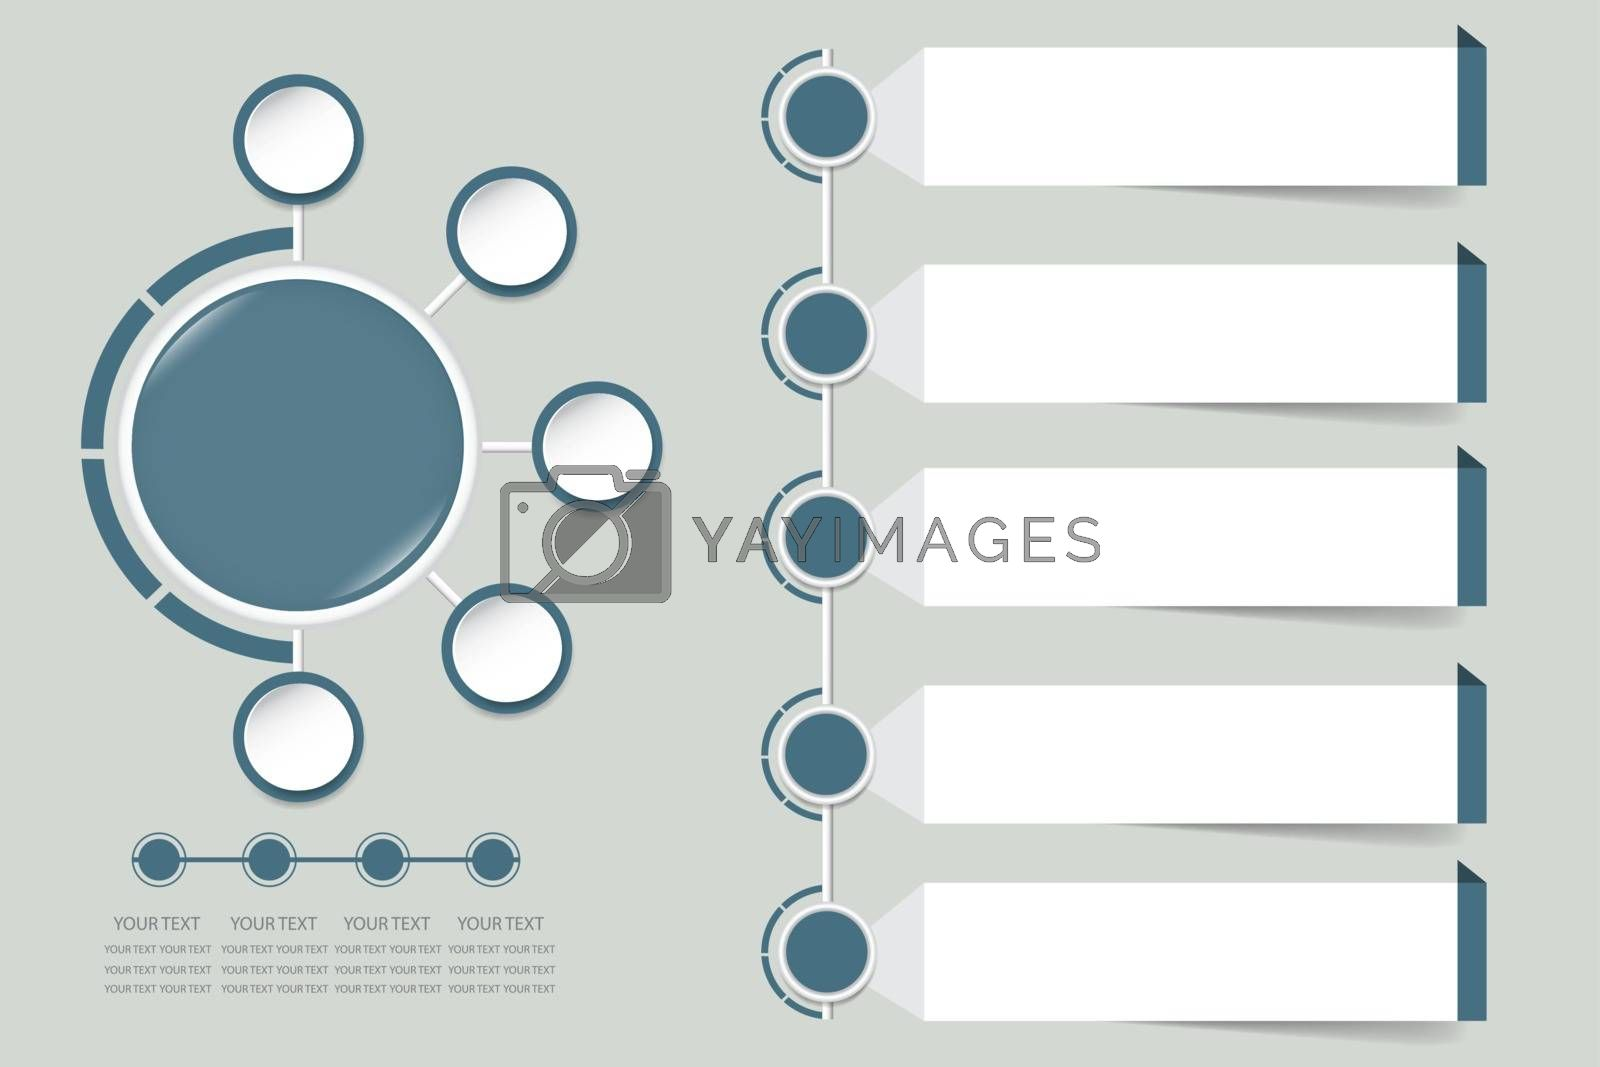 Modern infographic vector in faded shade of blue color  by Frank11